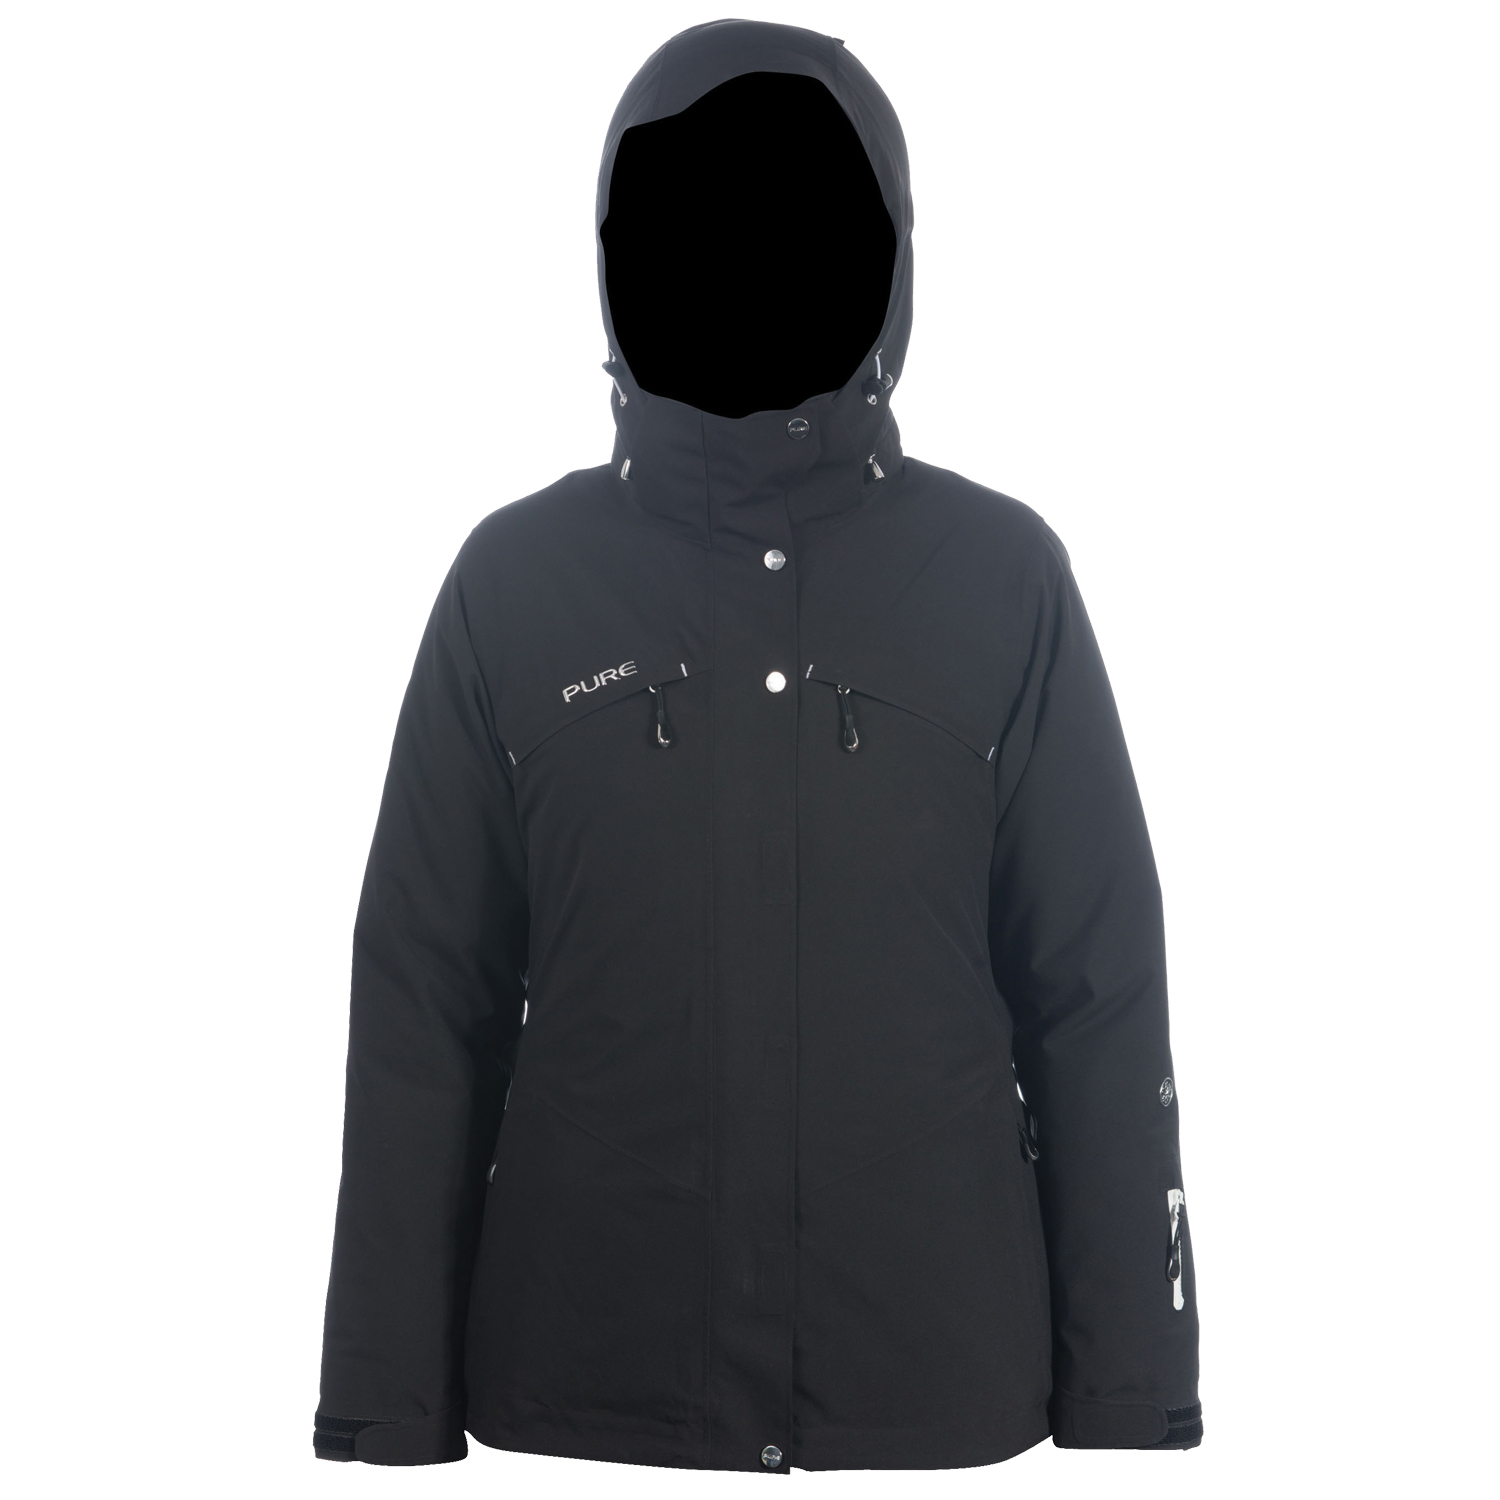 Meribel Jacket - Black